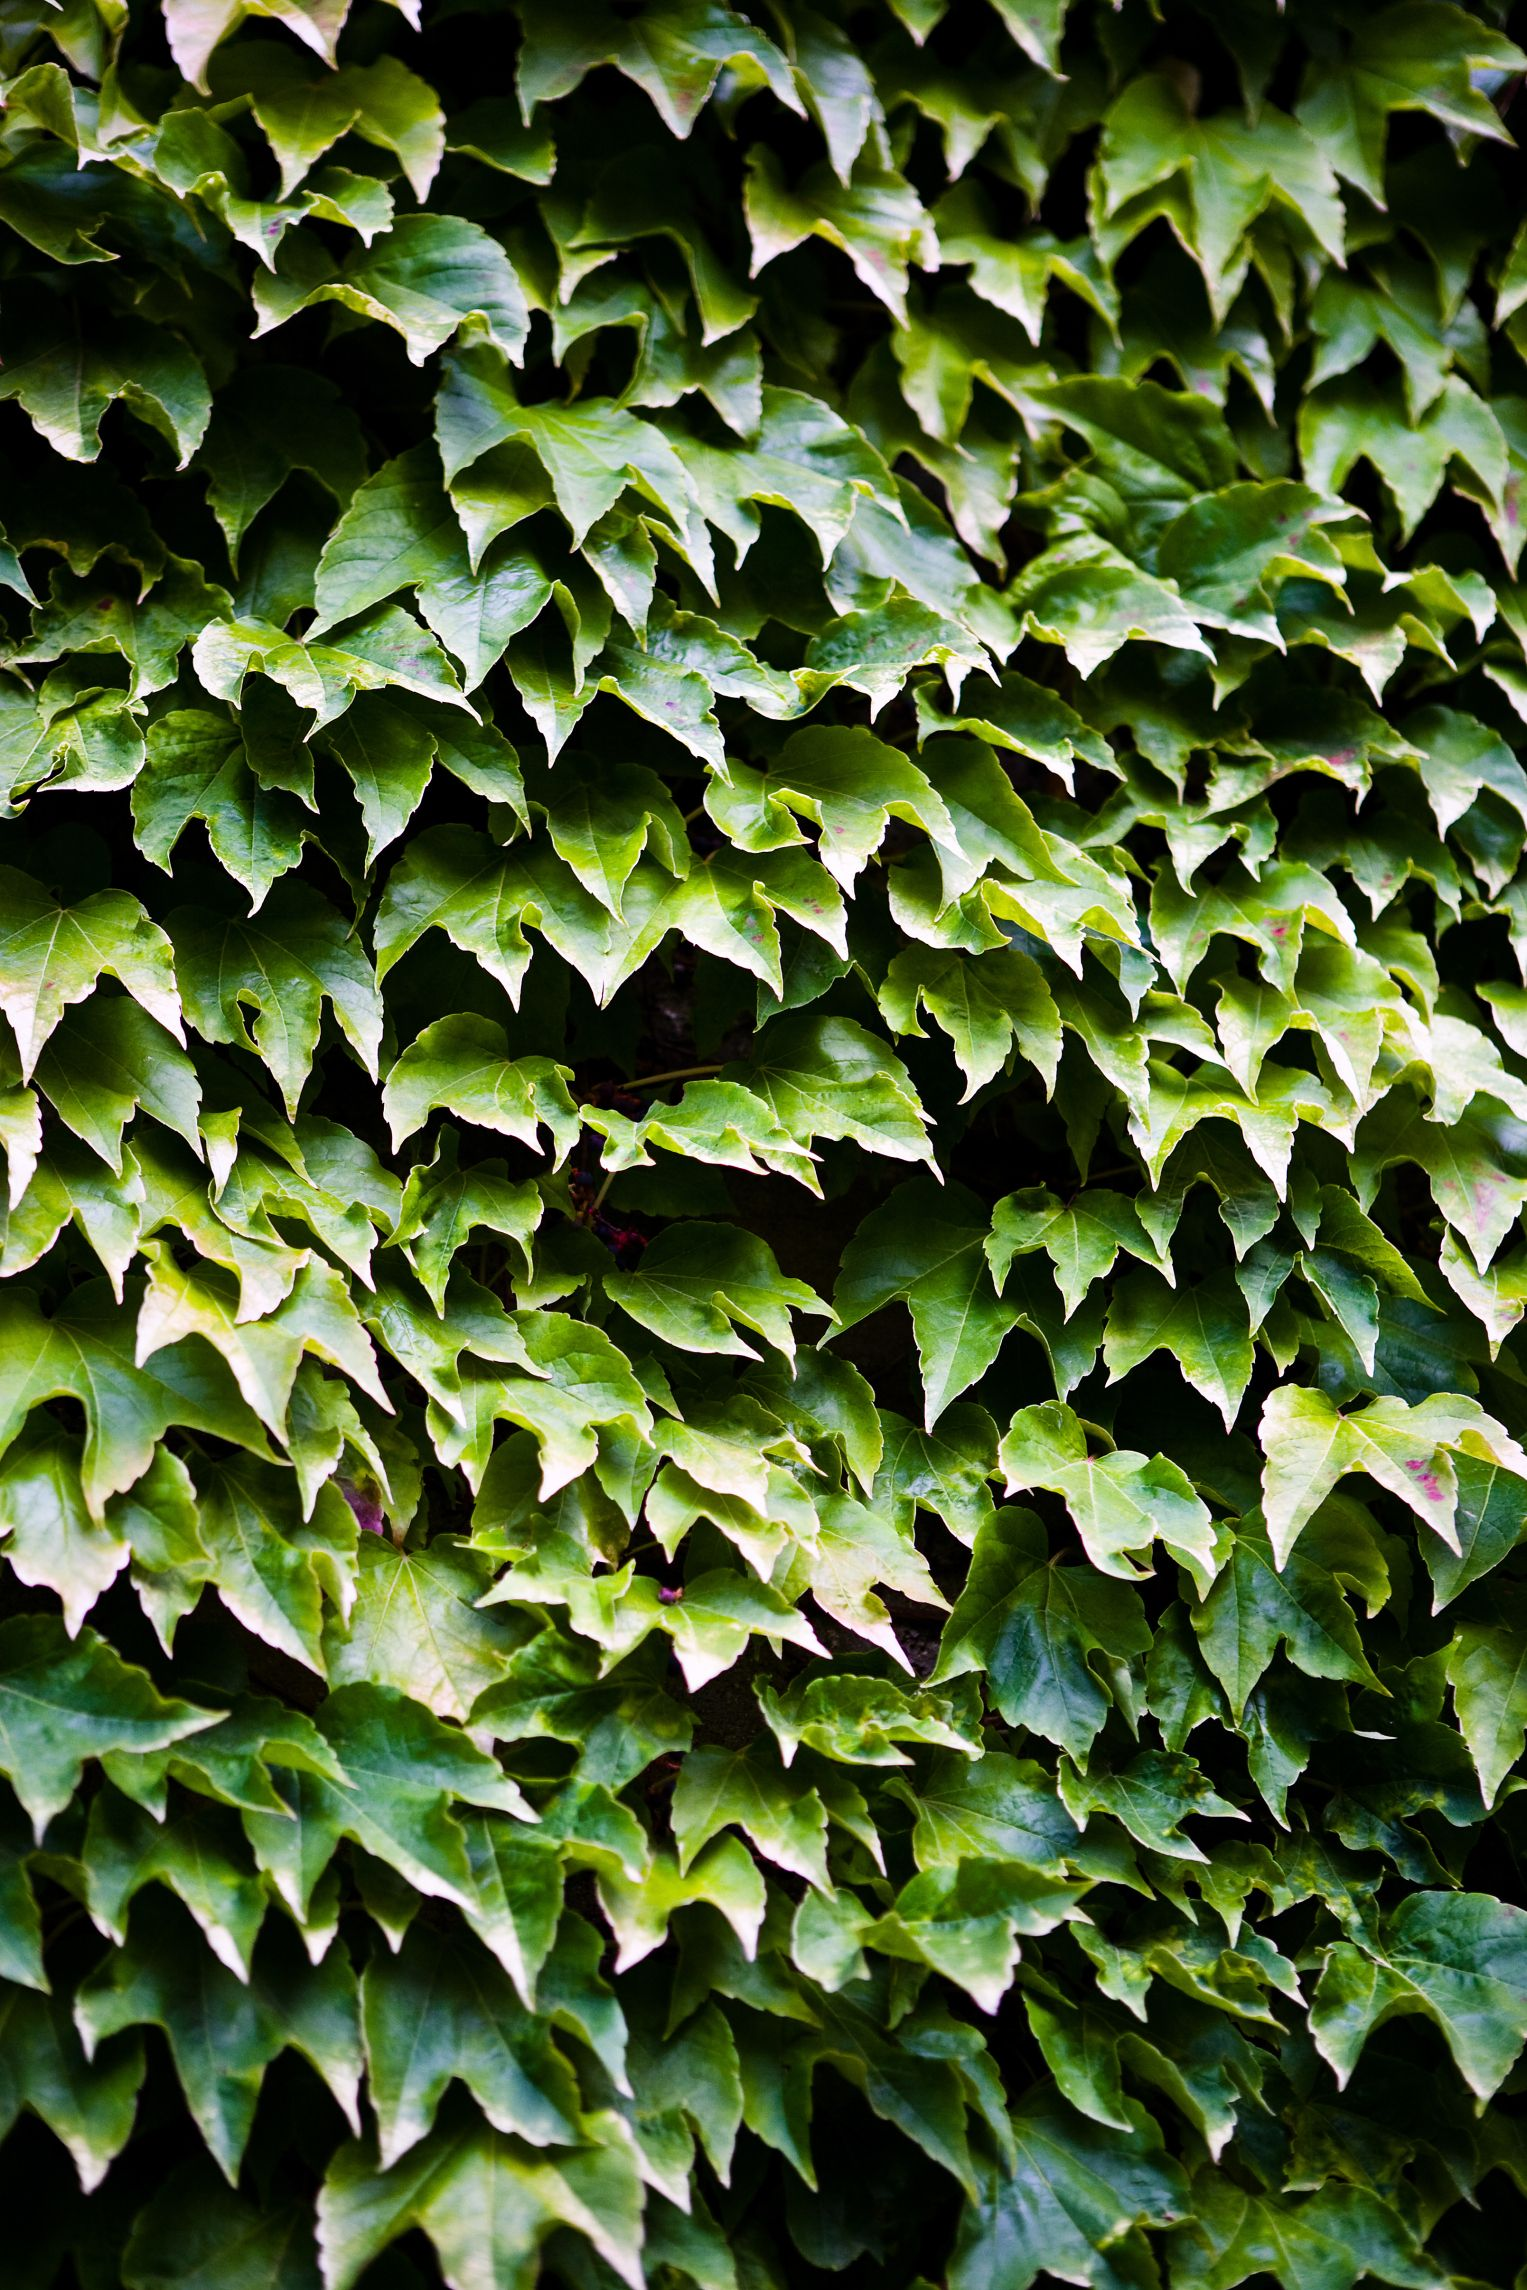 How To Clear Overgrown Ivy In The Yard Ivy Plants Evergreen Vines Garden Vines